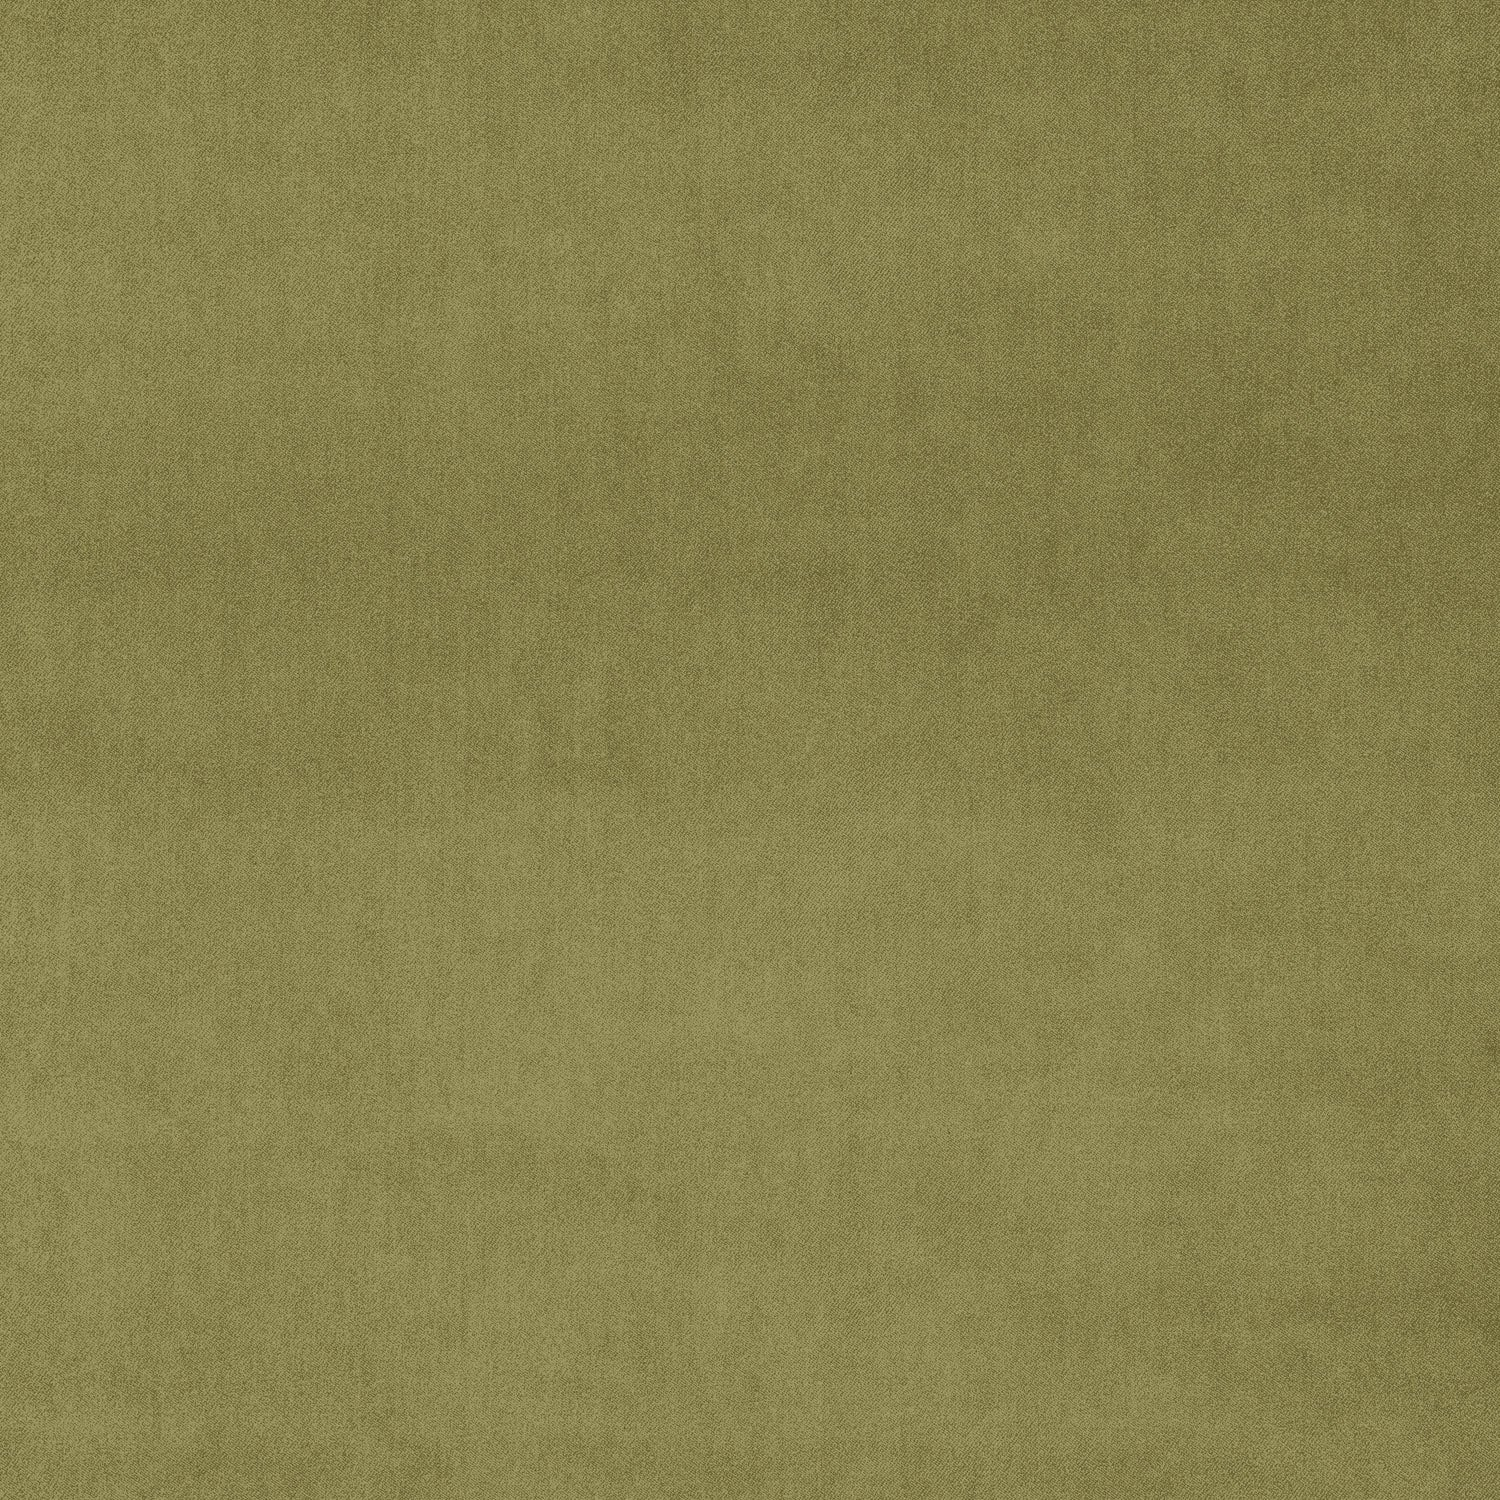 Sage green velvet fabric for curtains and upholstery with a stain resistant finish